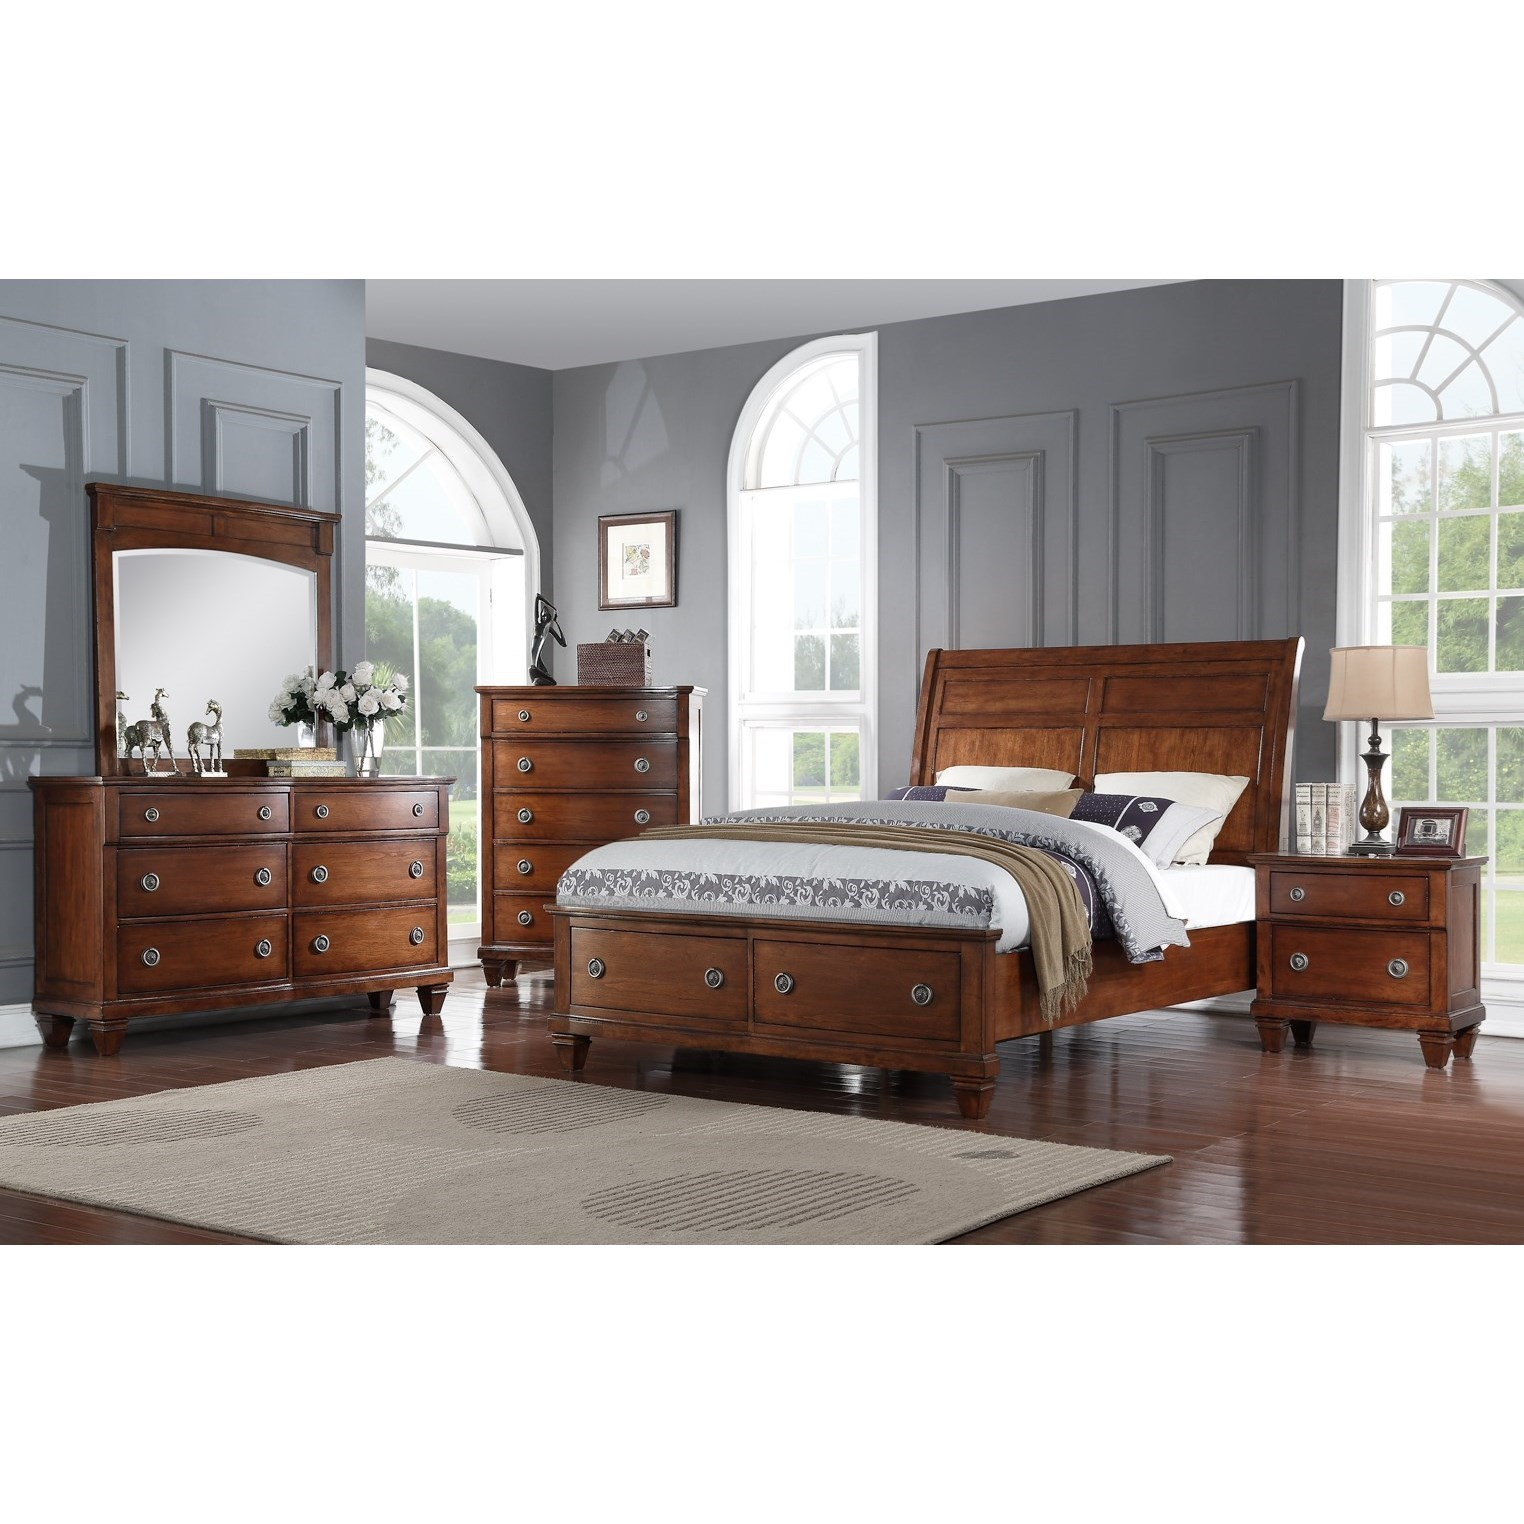 Avalon Furniture B068Queen Bedroom Group